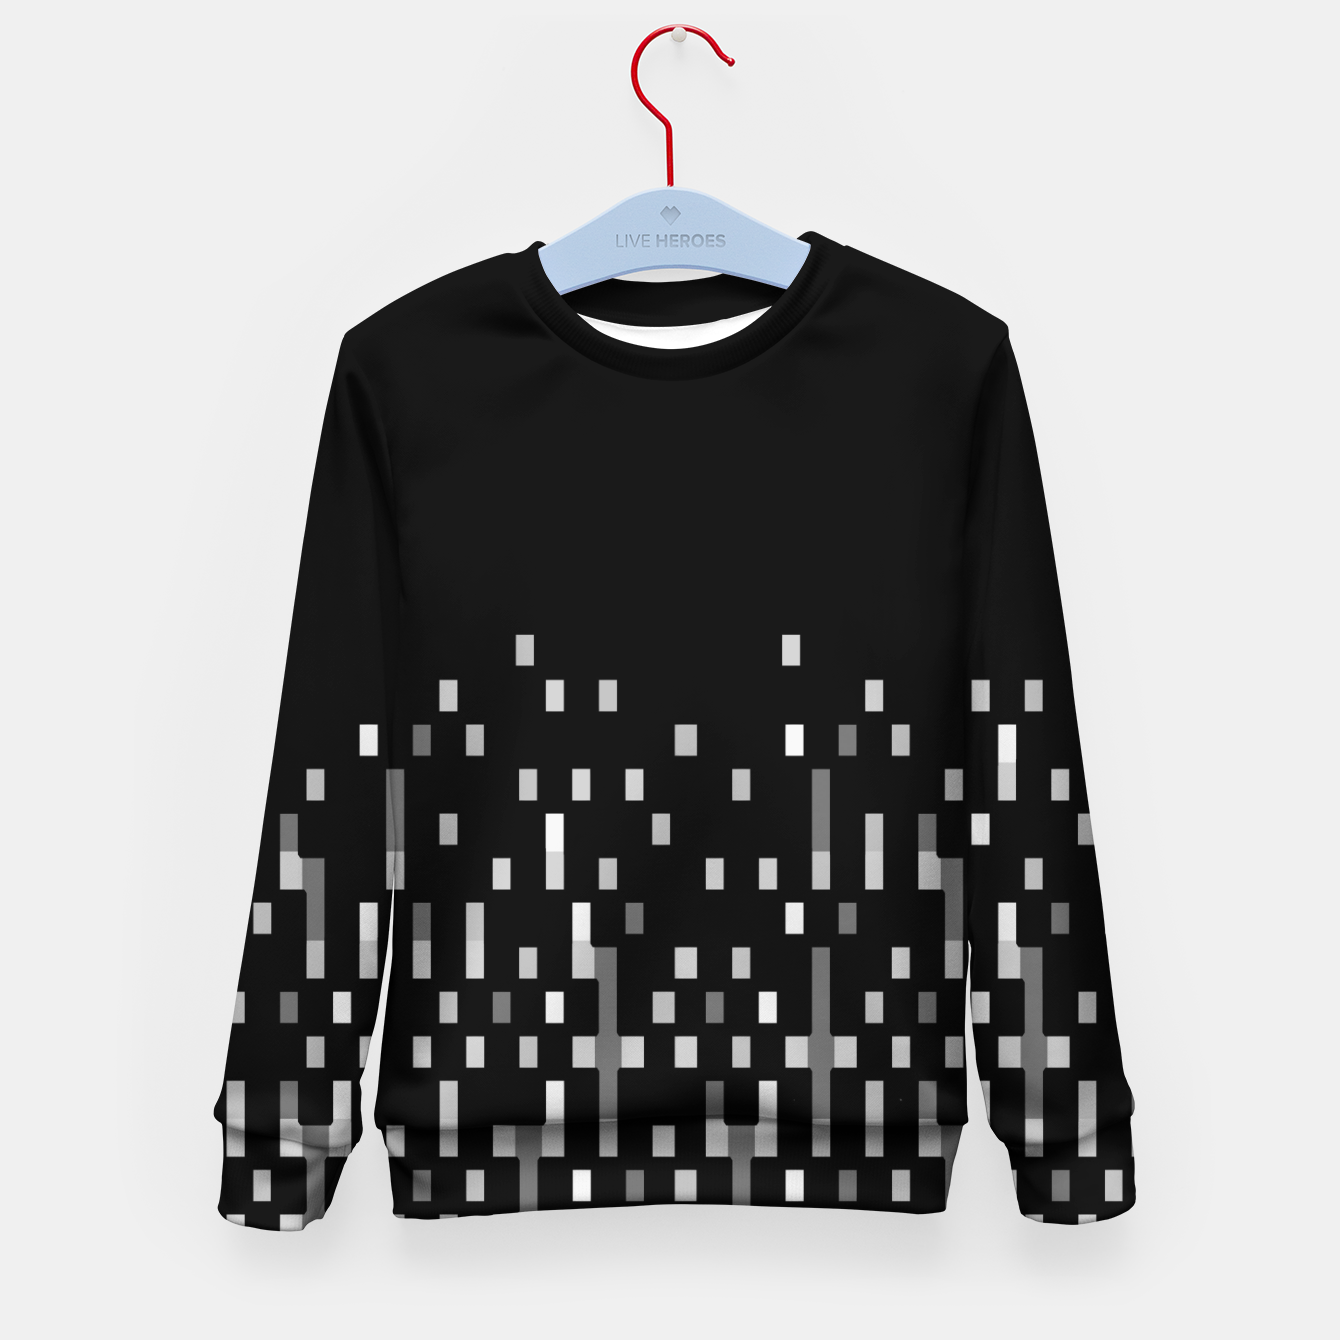 Zdjęcie Black and White Matrix Patterned Design Kid's sweater - Live Heroes